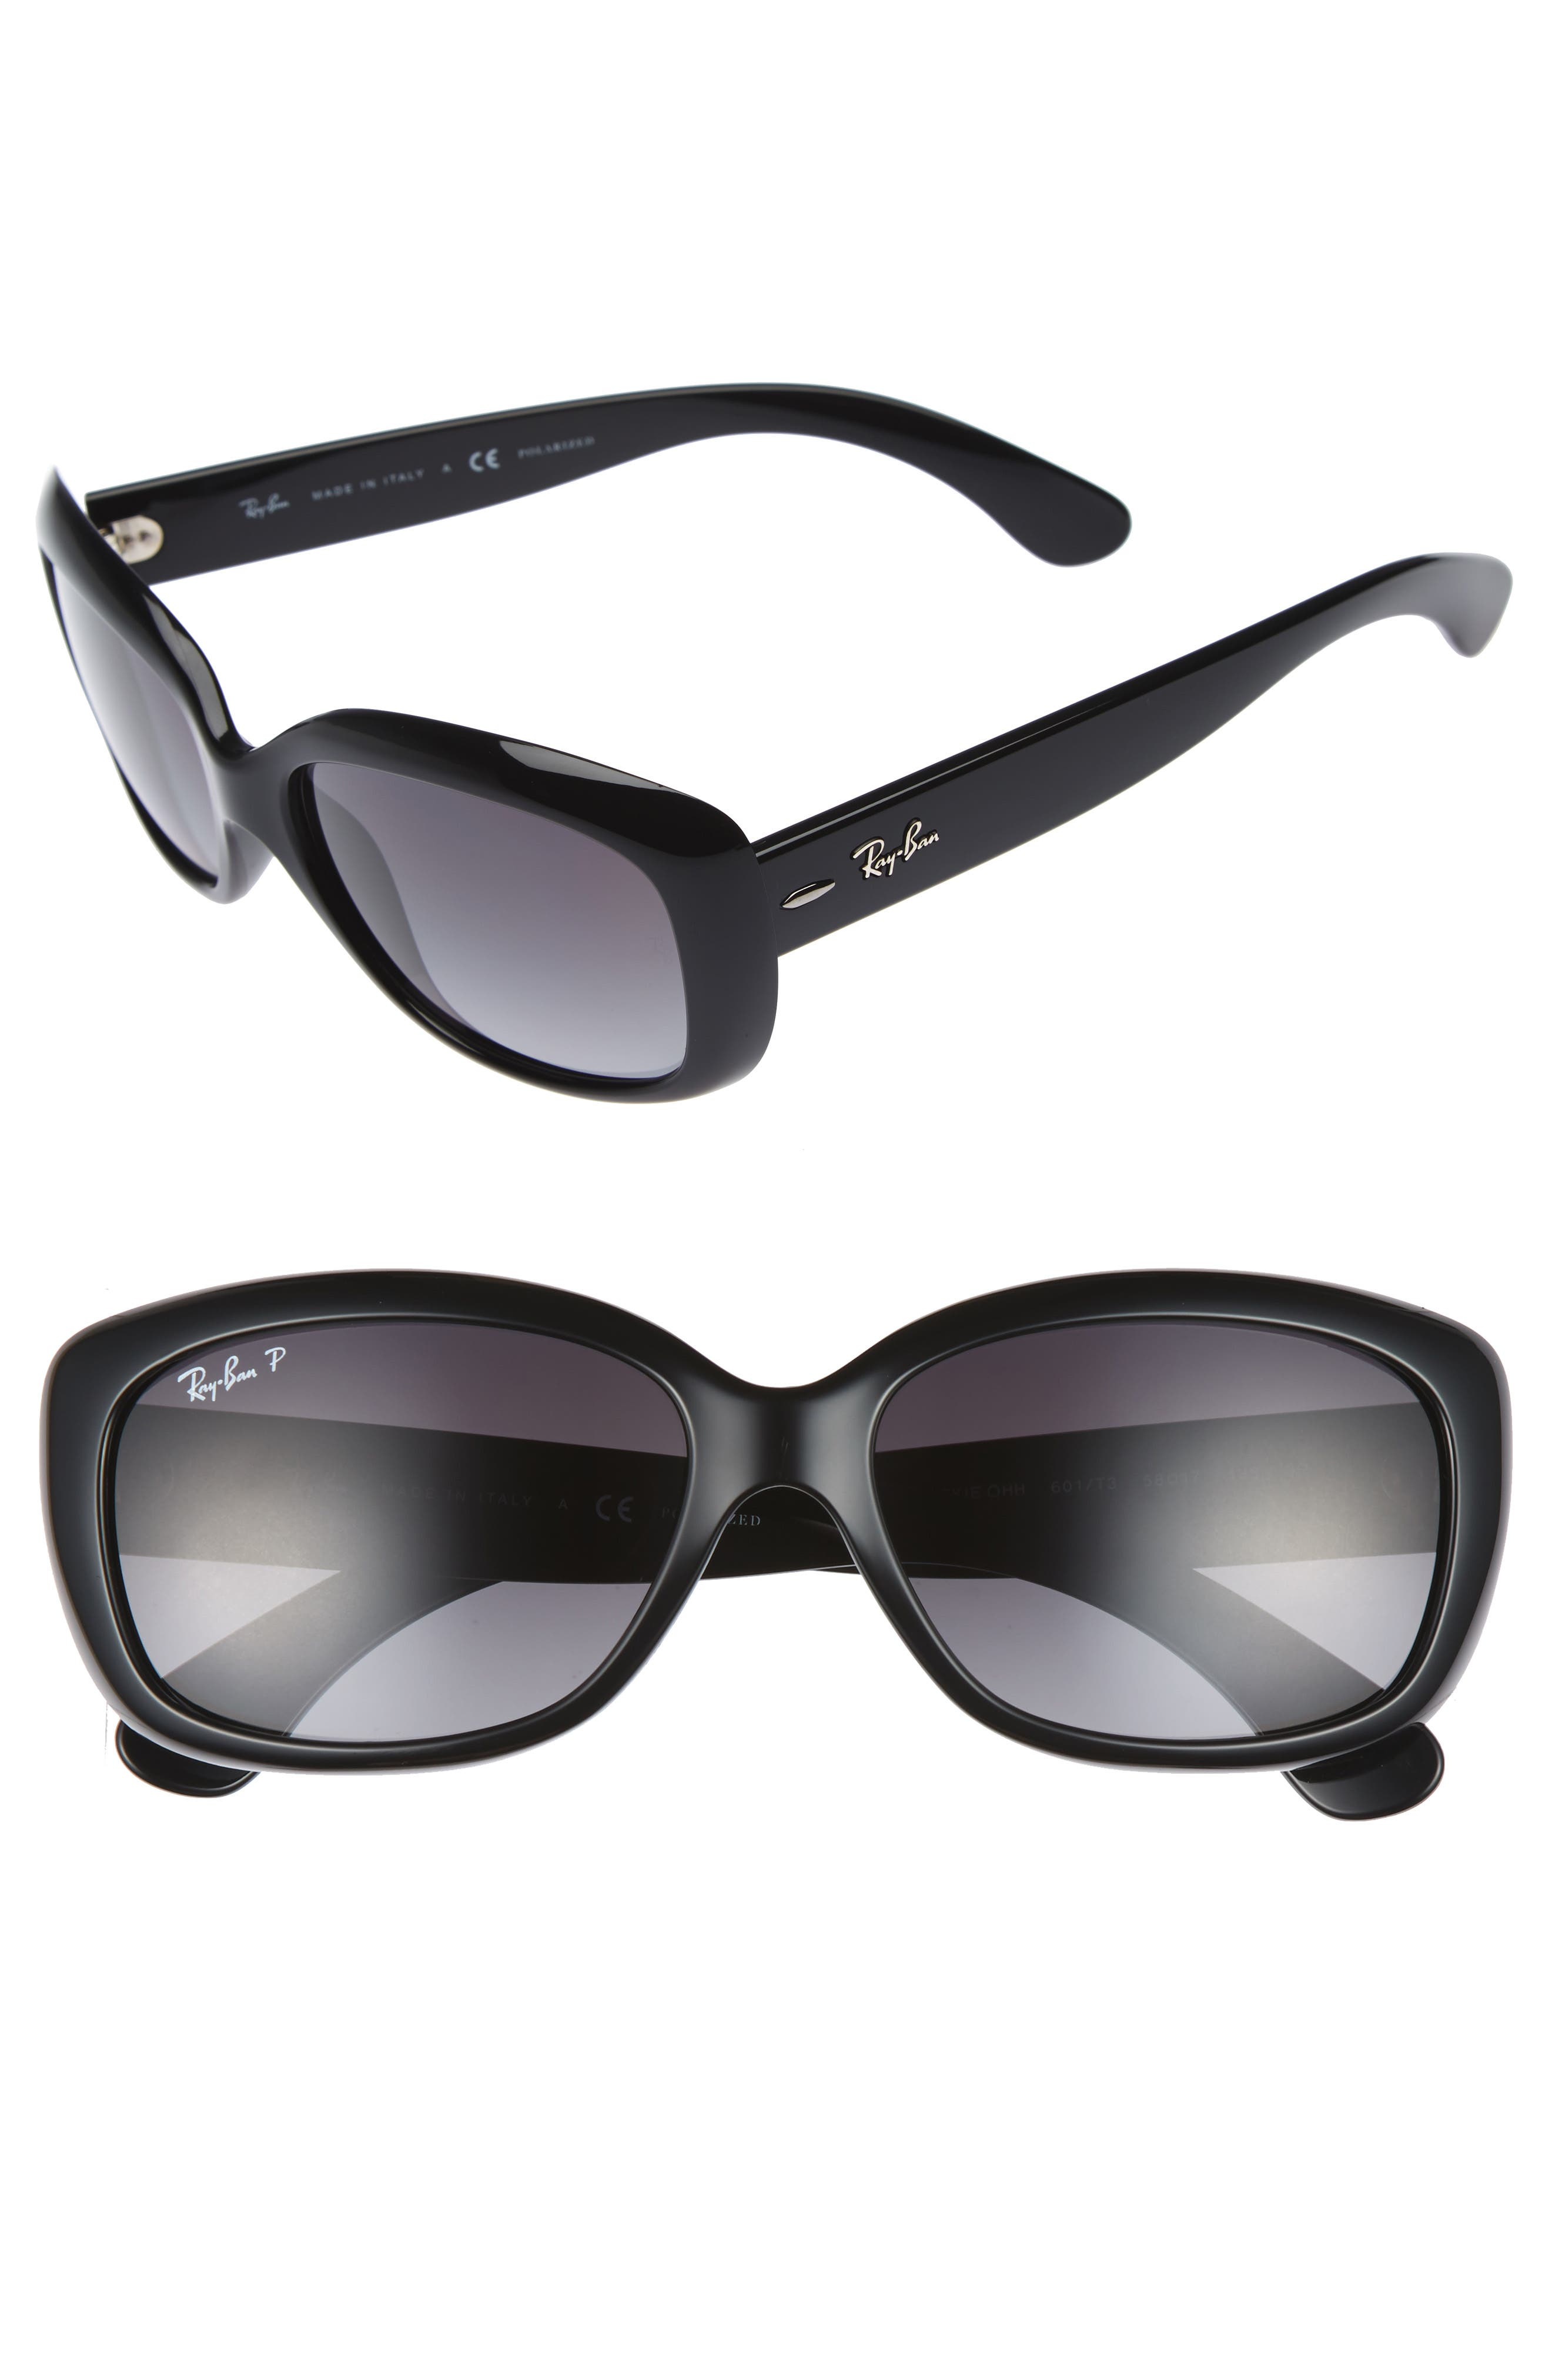 58mm Polarized Sunglasses,                         Main,                         color, BLACK GREY